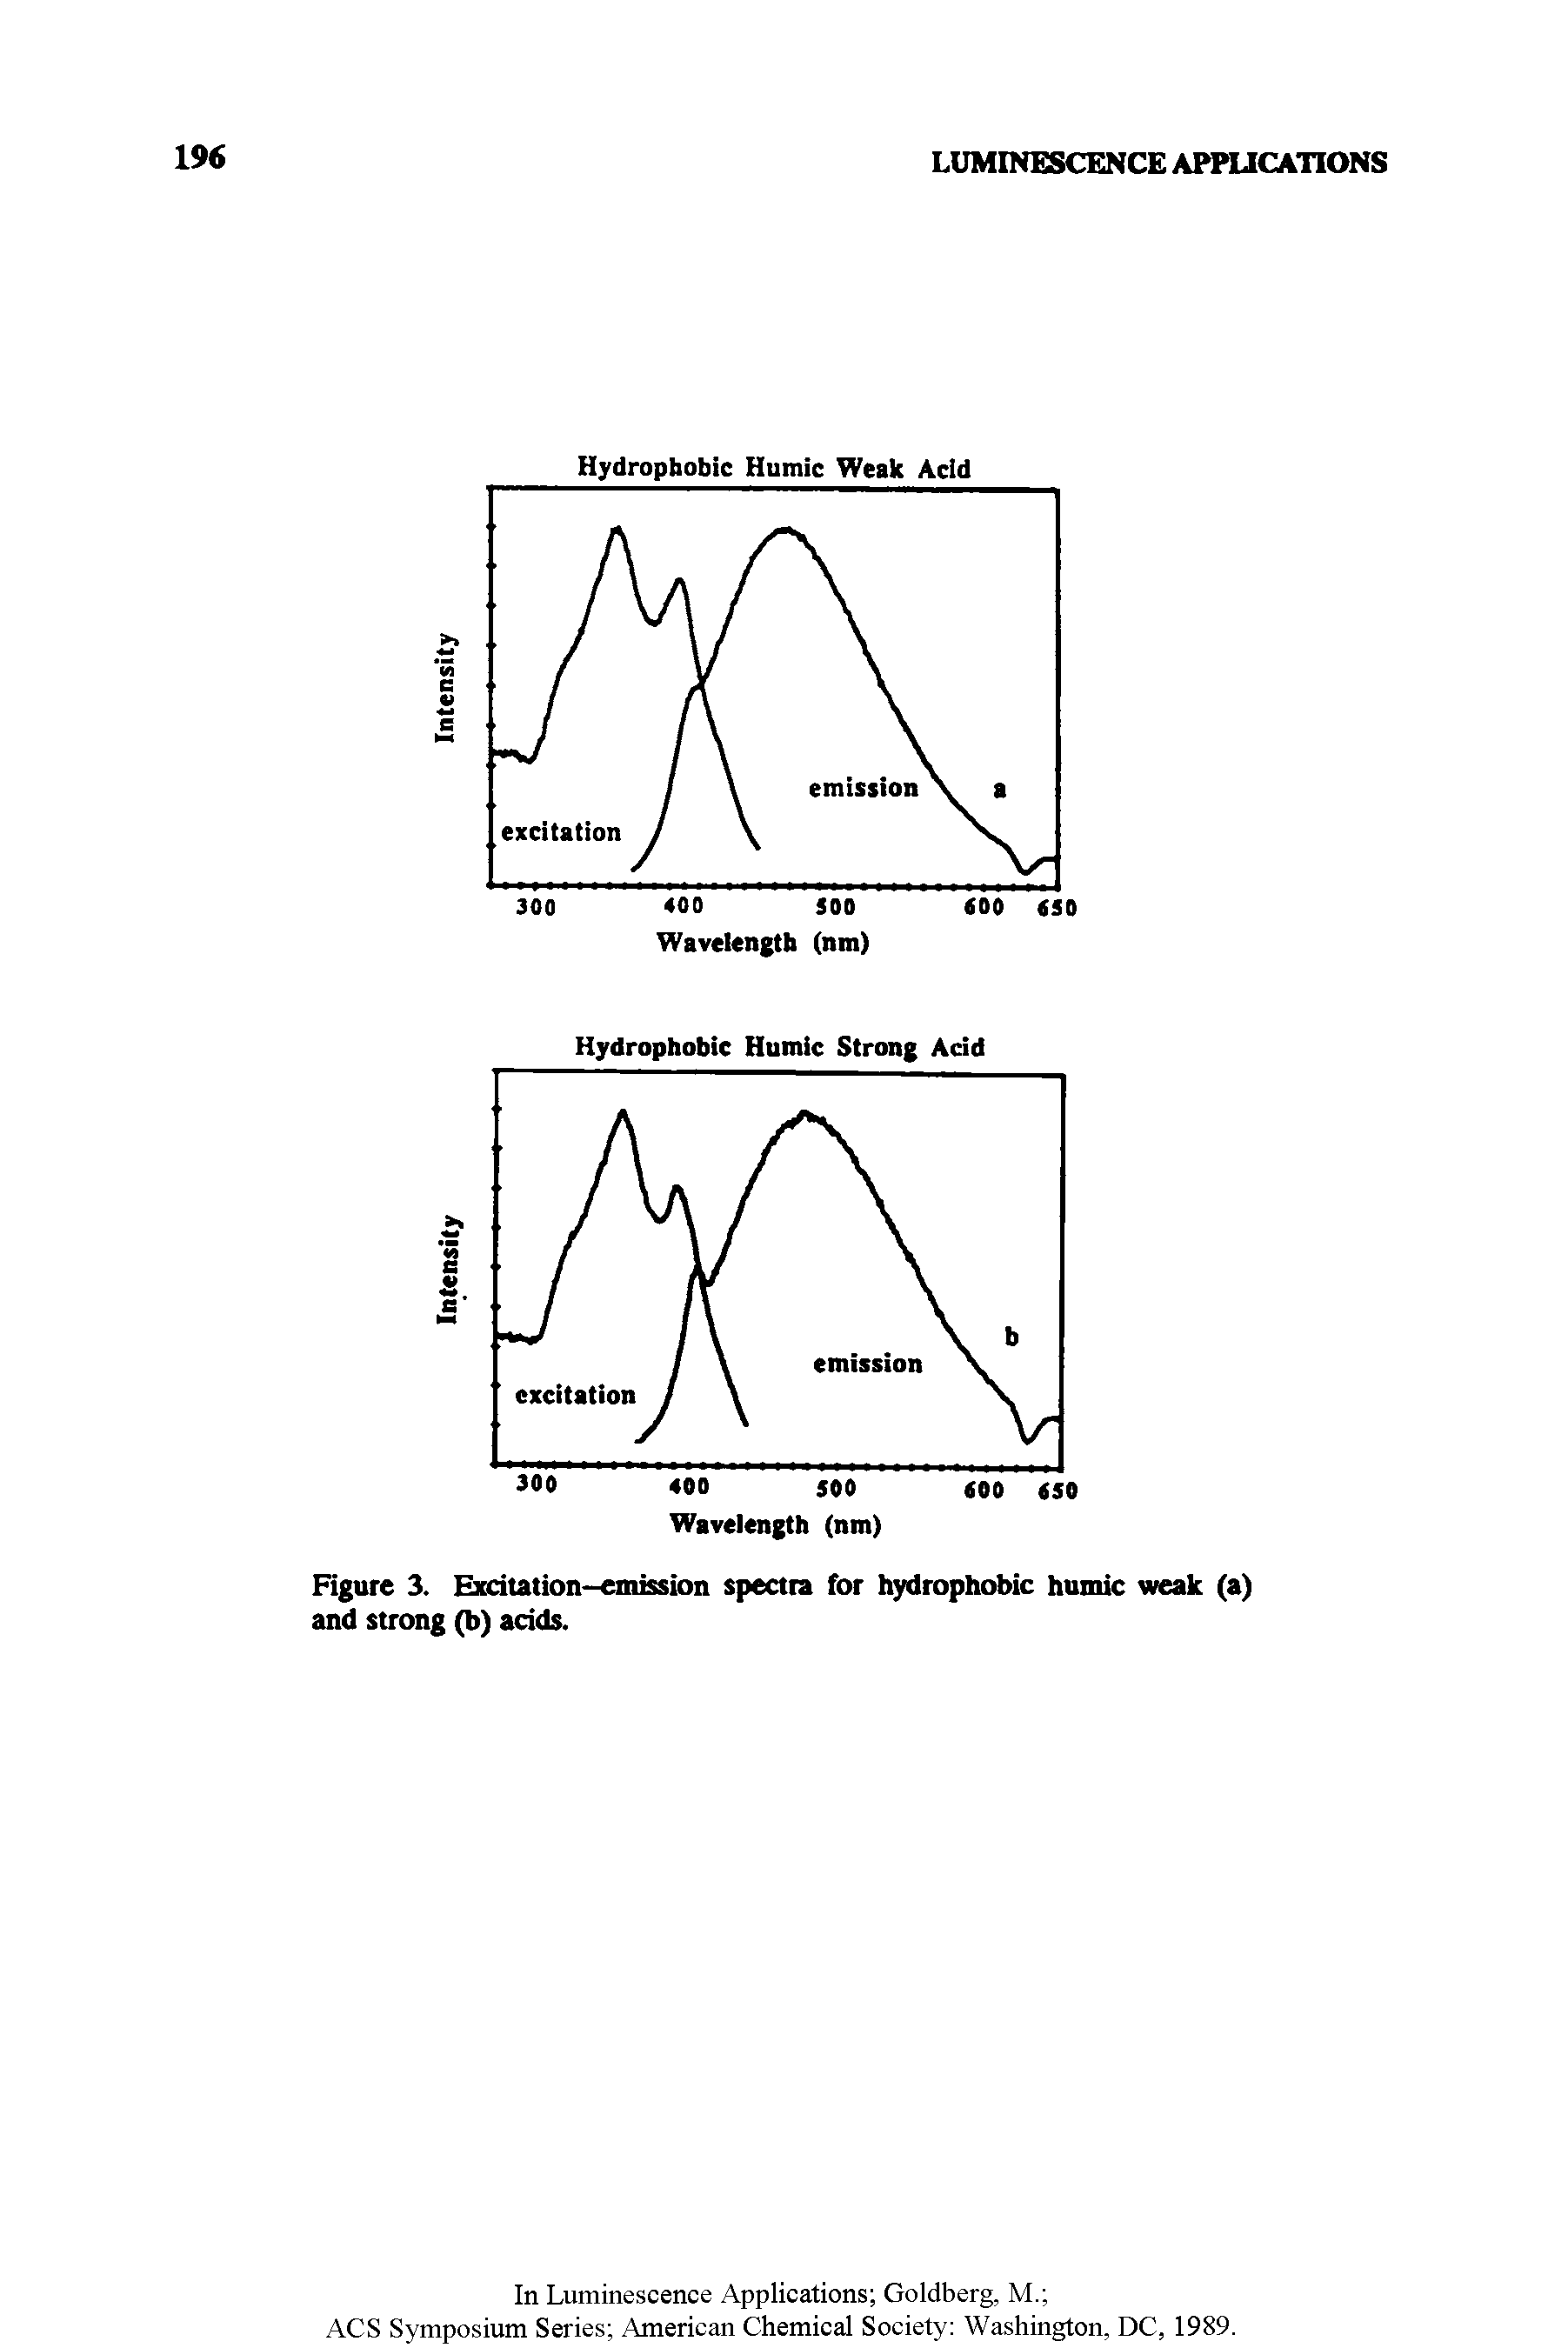 Figure 3. Excitation-emission spectra for hydrophobic humic weak (a) and strong (b) acids.